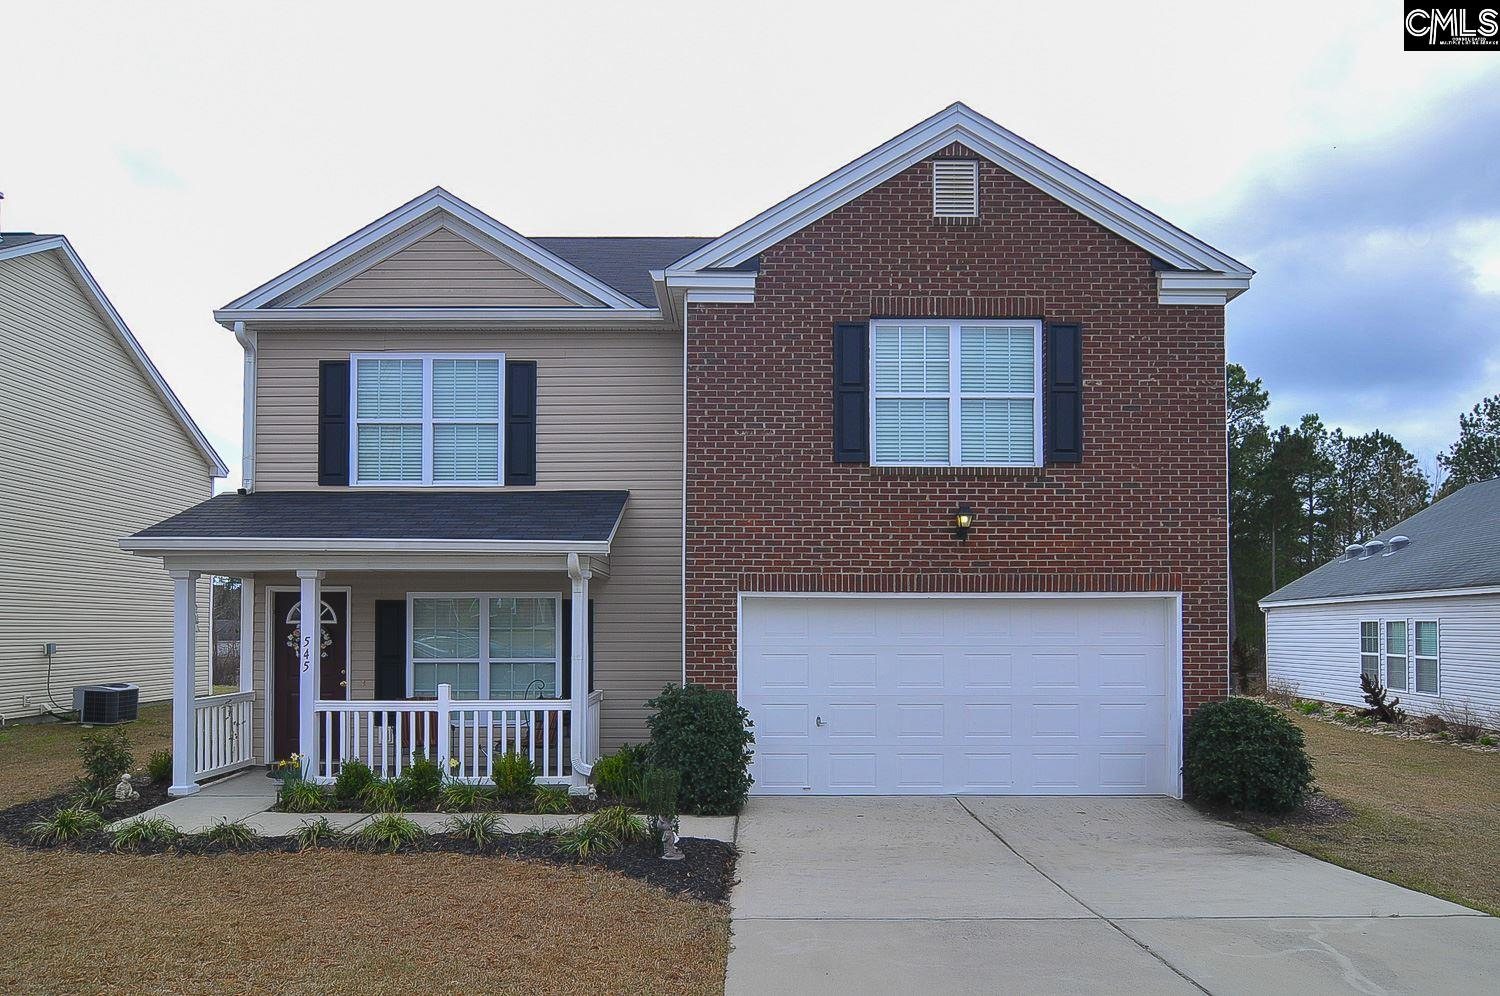 545 Heron Glen Columbia, SC 29229